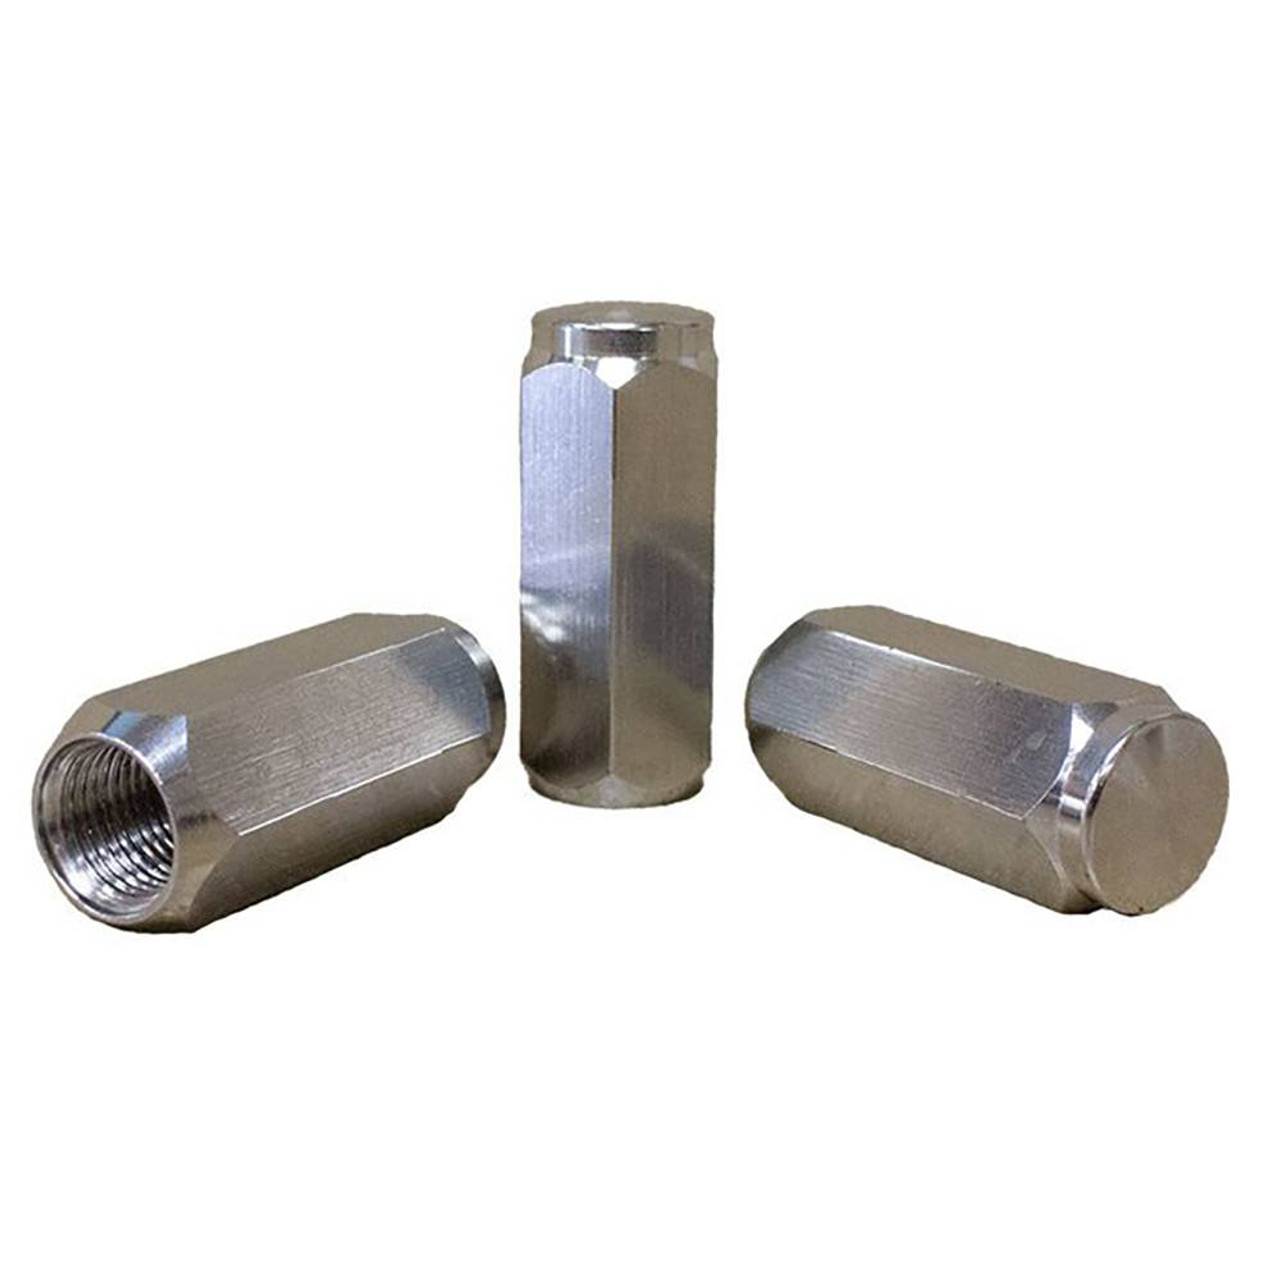 "9/16""- 18 Stainless Steel Trailer Lug Nut (1 Lug Nut)"